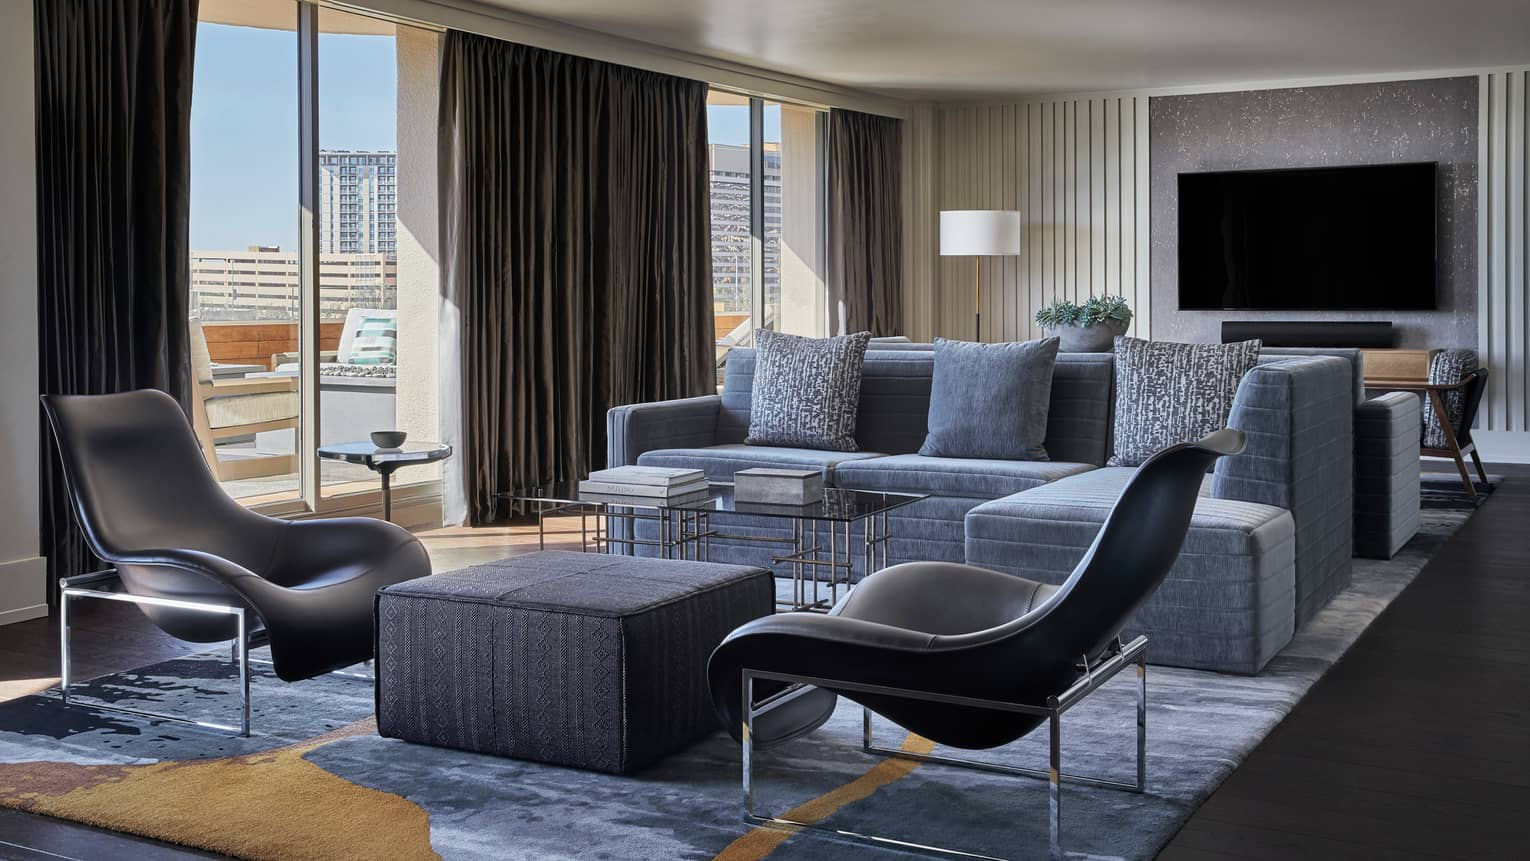 Congressional Suite modern sectional sofa, accent chairs, floor-to-ceiling windows, TV